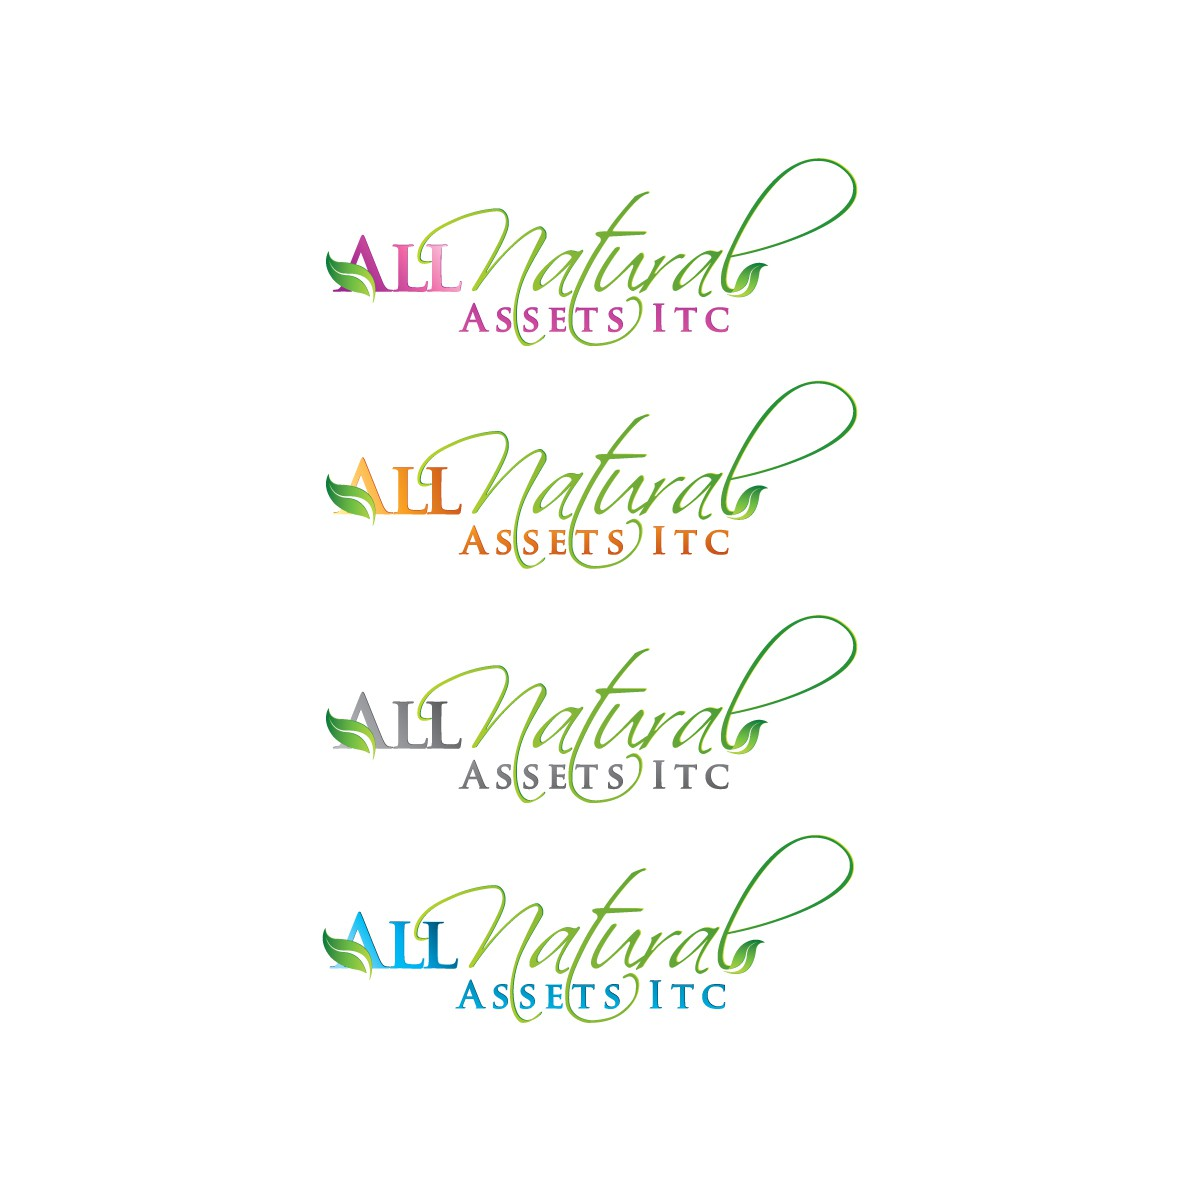 Help All Natural Assets Inc. with a new logo